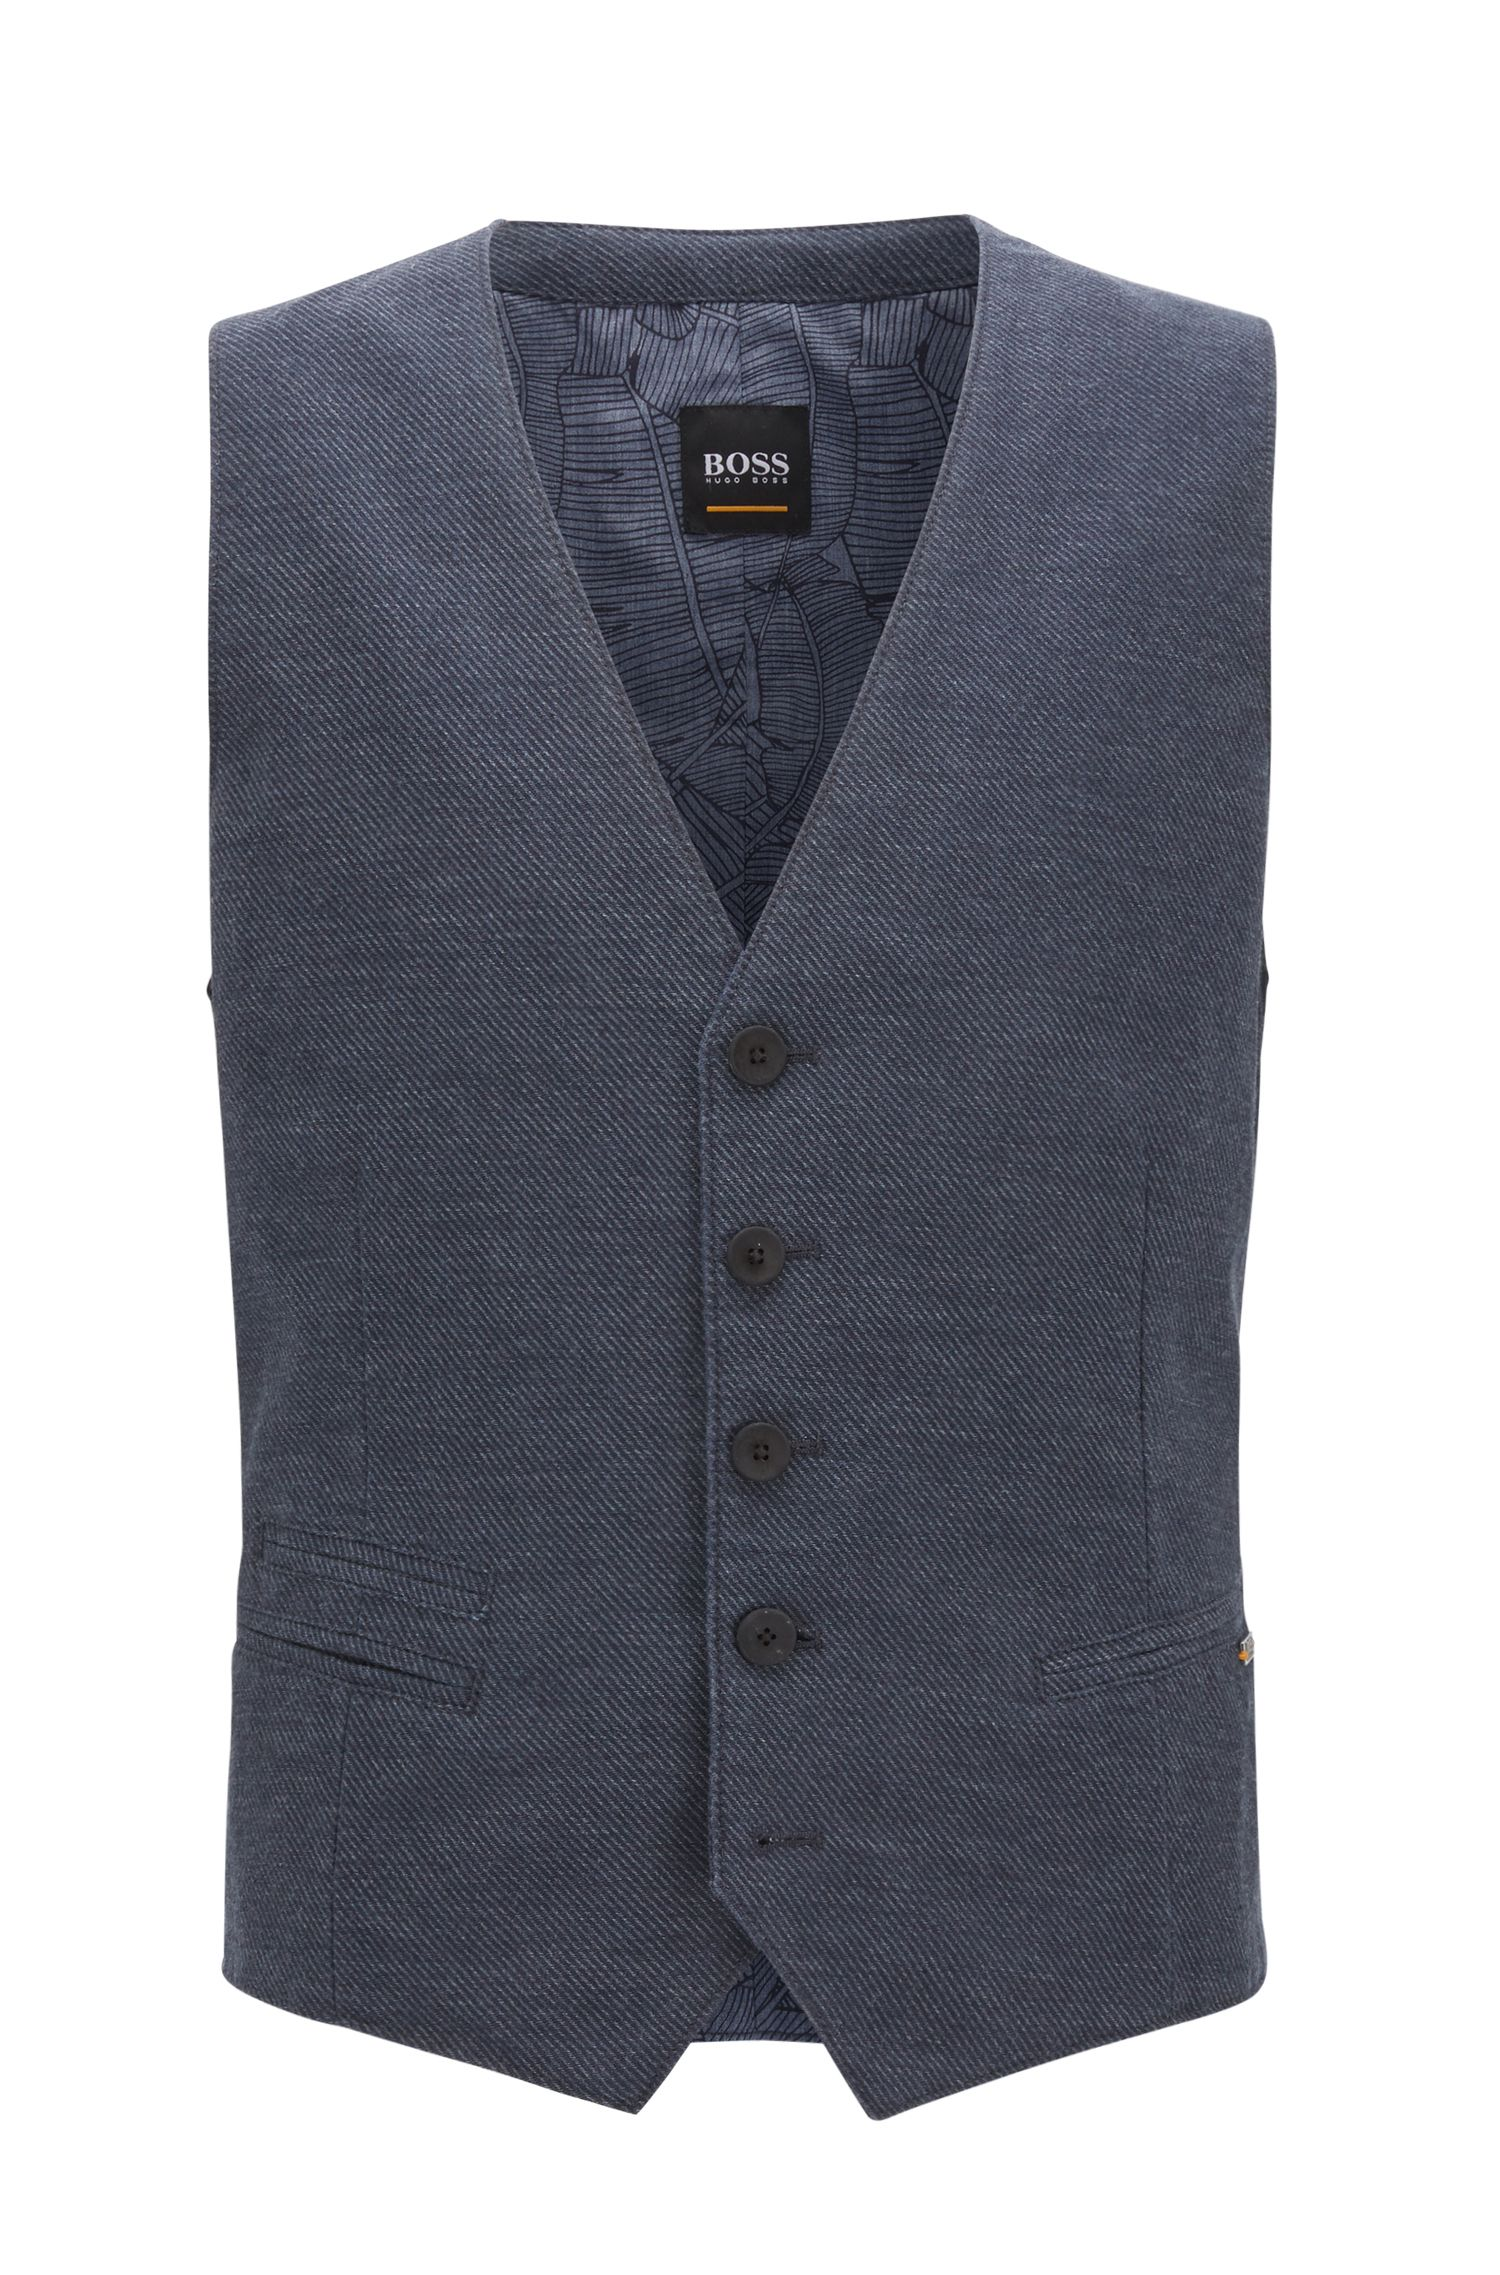 Slim-fit gilet in een gemêleerde twill met visgraatpatroon